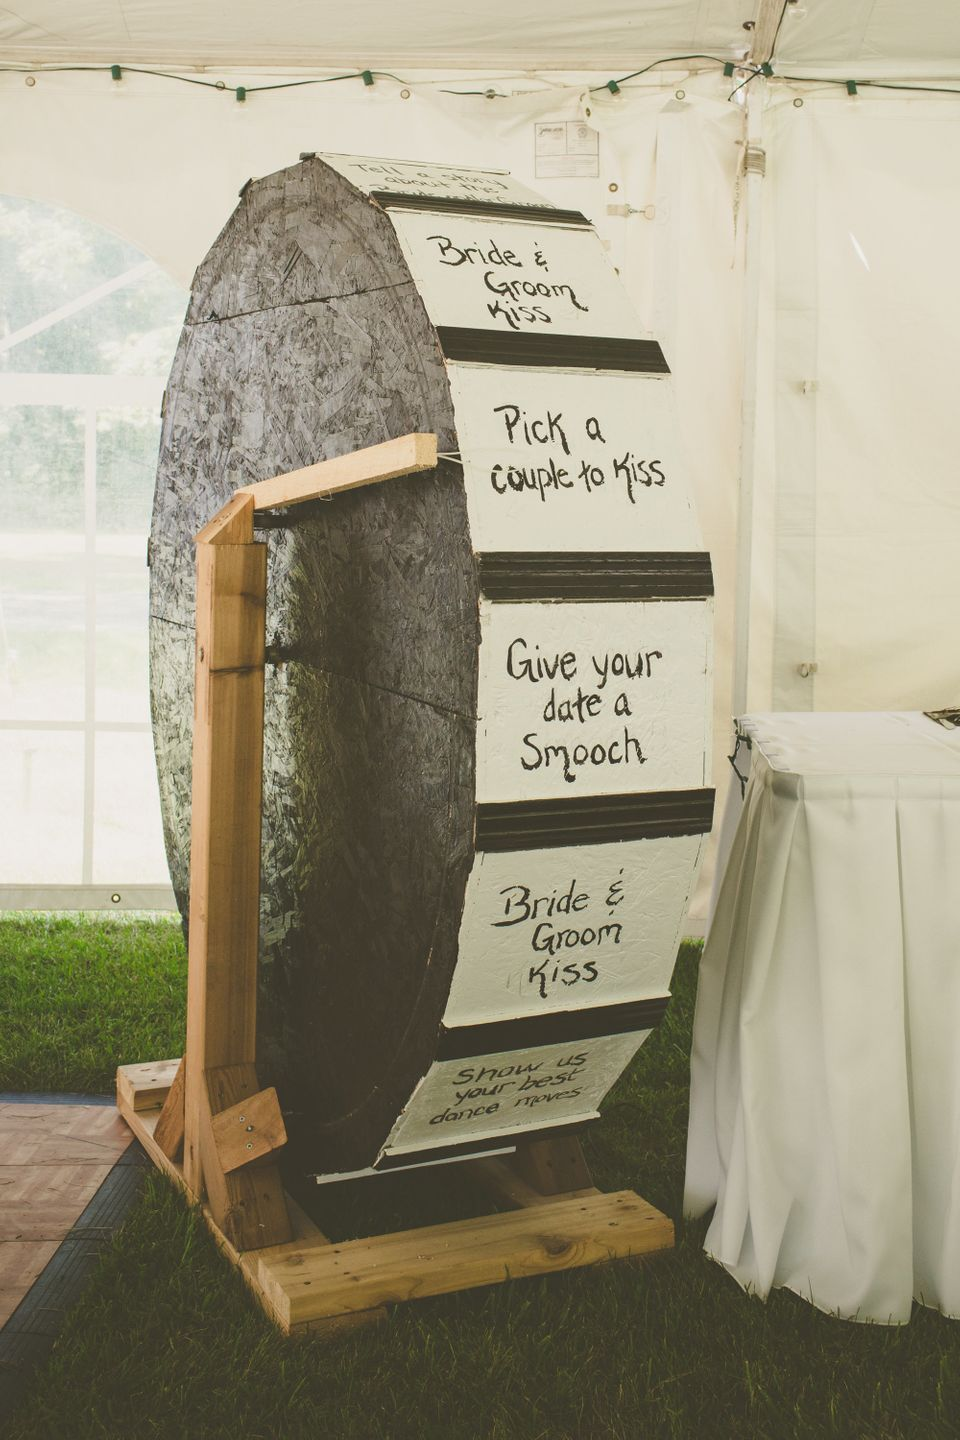 Wedding Reception Games.21 Awesome Wedding Games That Will Keep The Party Going Huffpost Life